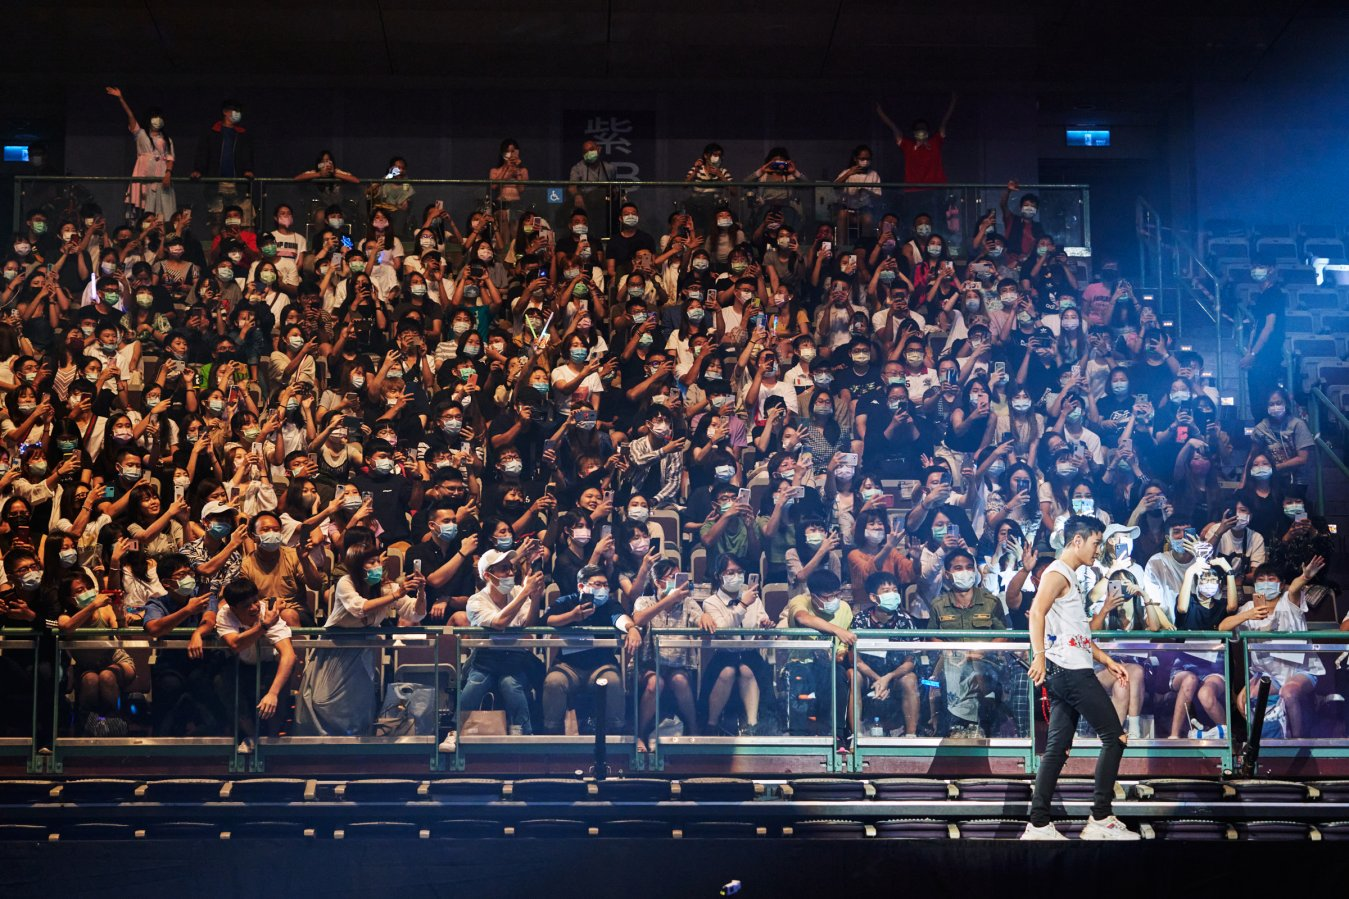 Eric Chou walks on an extended stagethat brought him close to fans sitting on the second level of the Taipei Arena on Aug. 8, 2020.